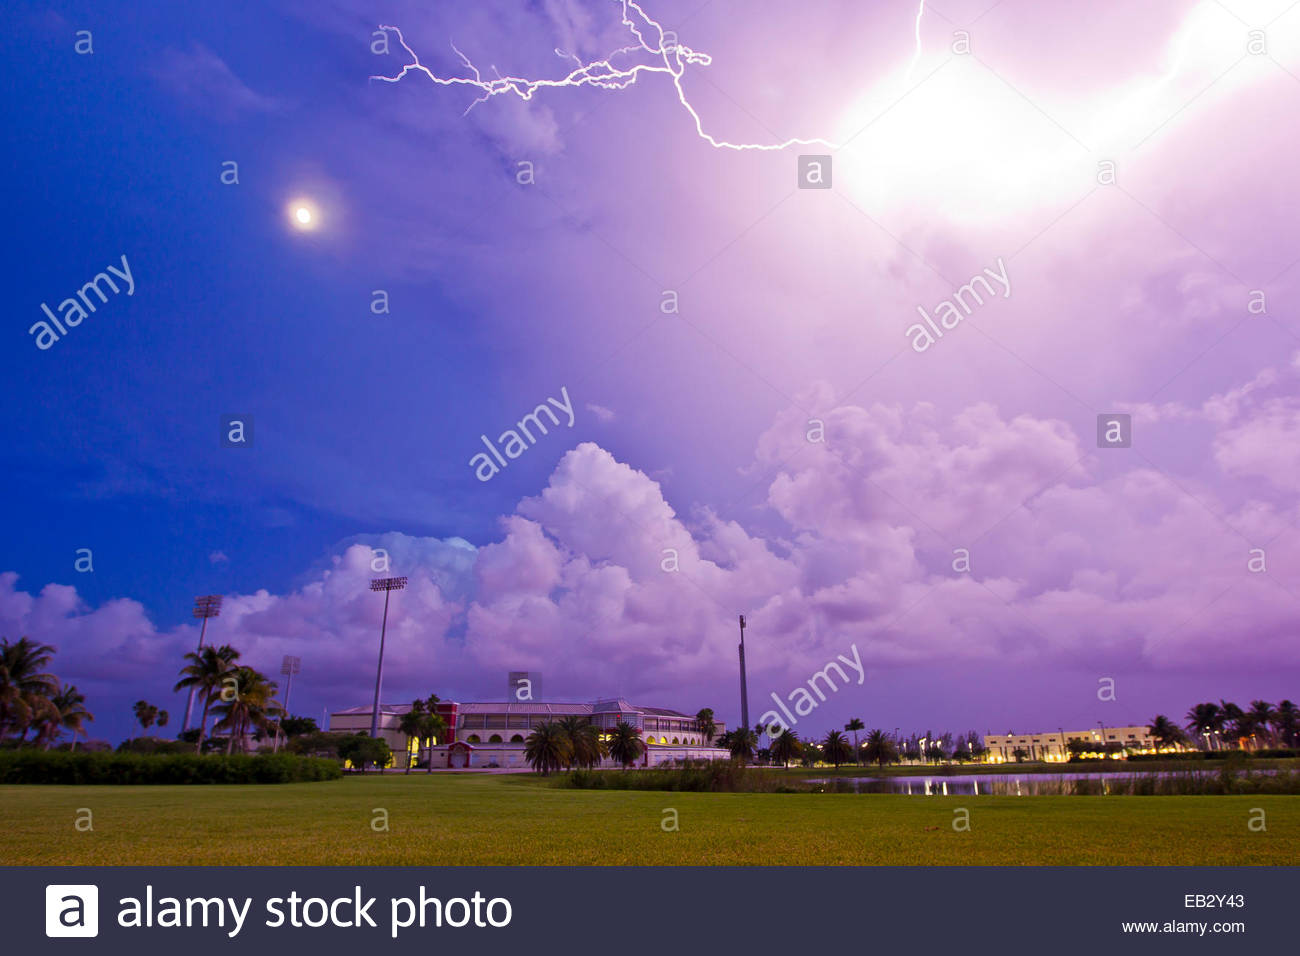 Intense lightning colors the sky purple at night during a thunderstorm. - Stock Image